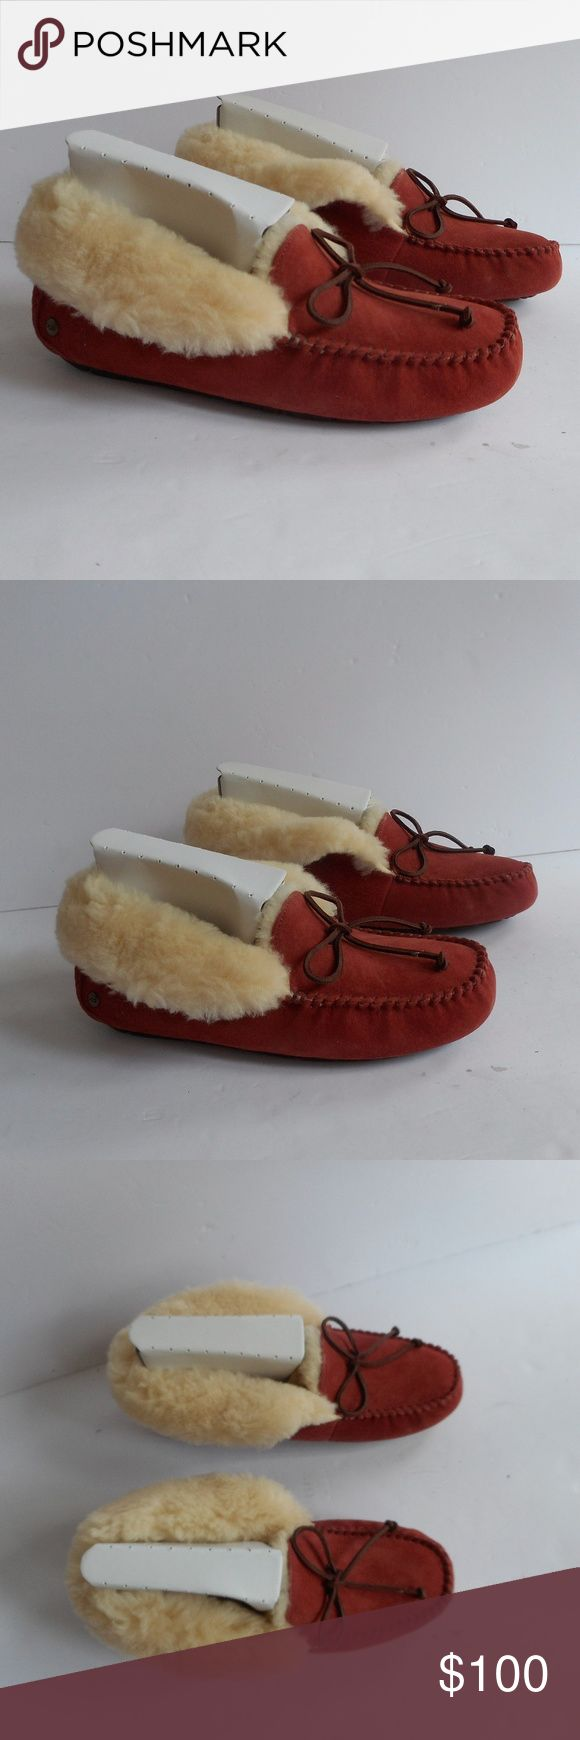 Ugg Alena Spice Orange Slipper UGG AUSTRALIA ALENA ANSLEY DAKOTA SIZE 9 Indoor Outdoor Slippers Water-resistant uppers beautiful color! so comfortable and great quality  New in the box Women's ugg boots ugg shoes UGG Shoes Moccasins